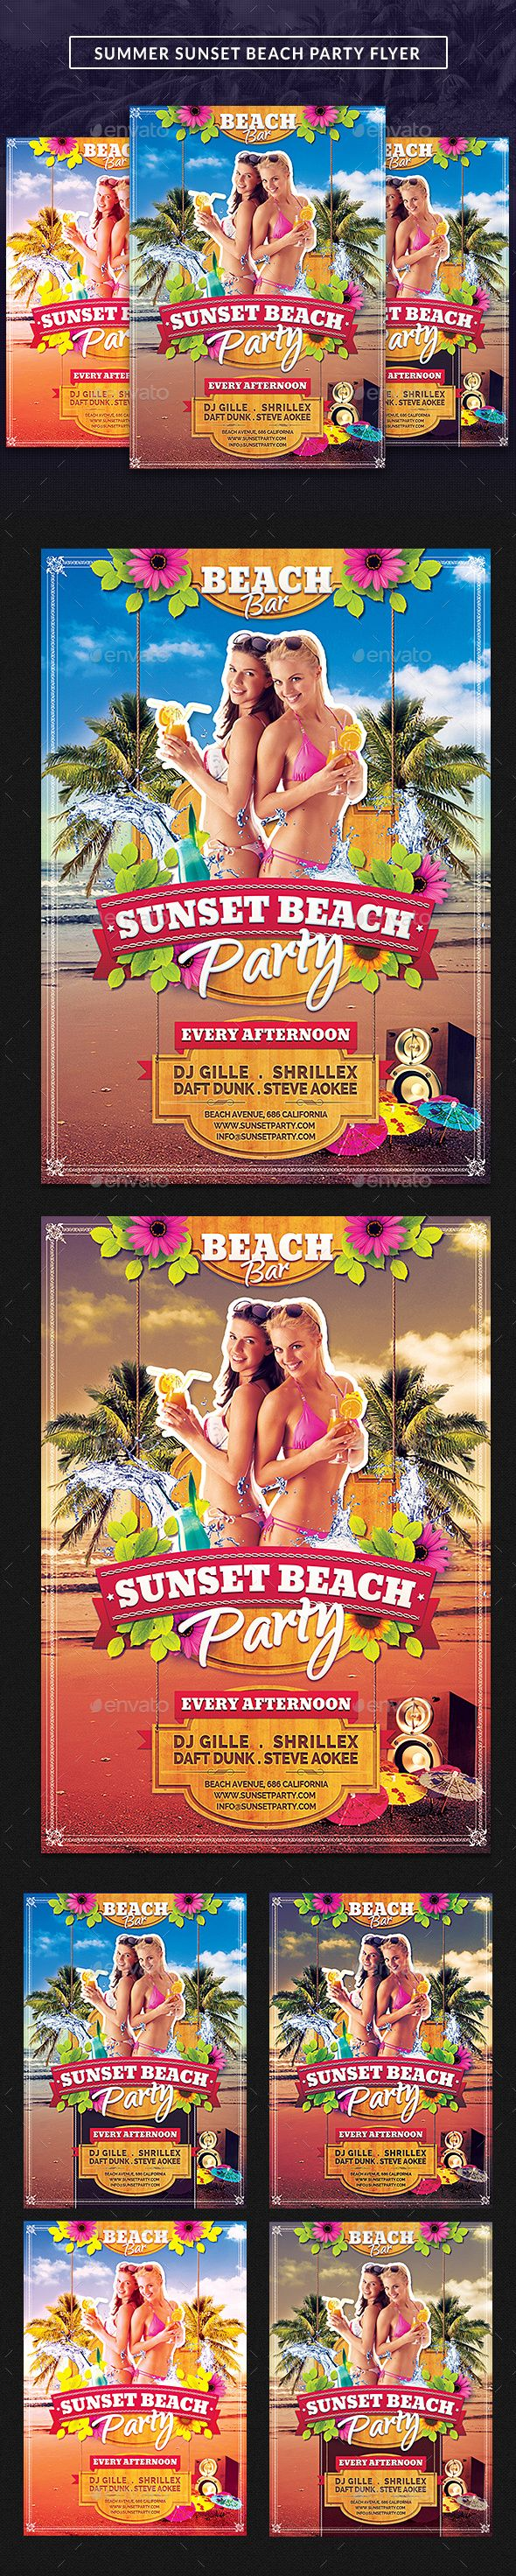 Summer Sunset Beach Party #Flyer - Clubs & Parties Events Download here: https://graphicriver.net/item/summer-sunset-beach-party-flyer/8340230?ref=alena994